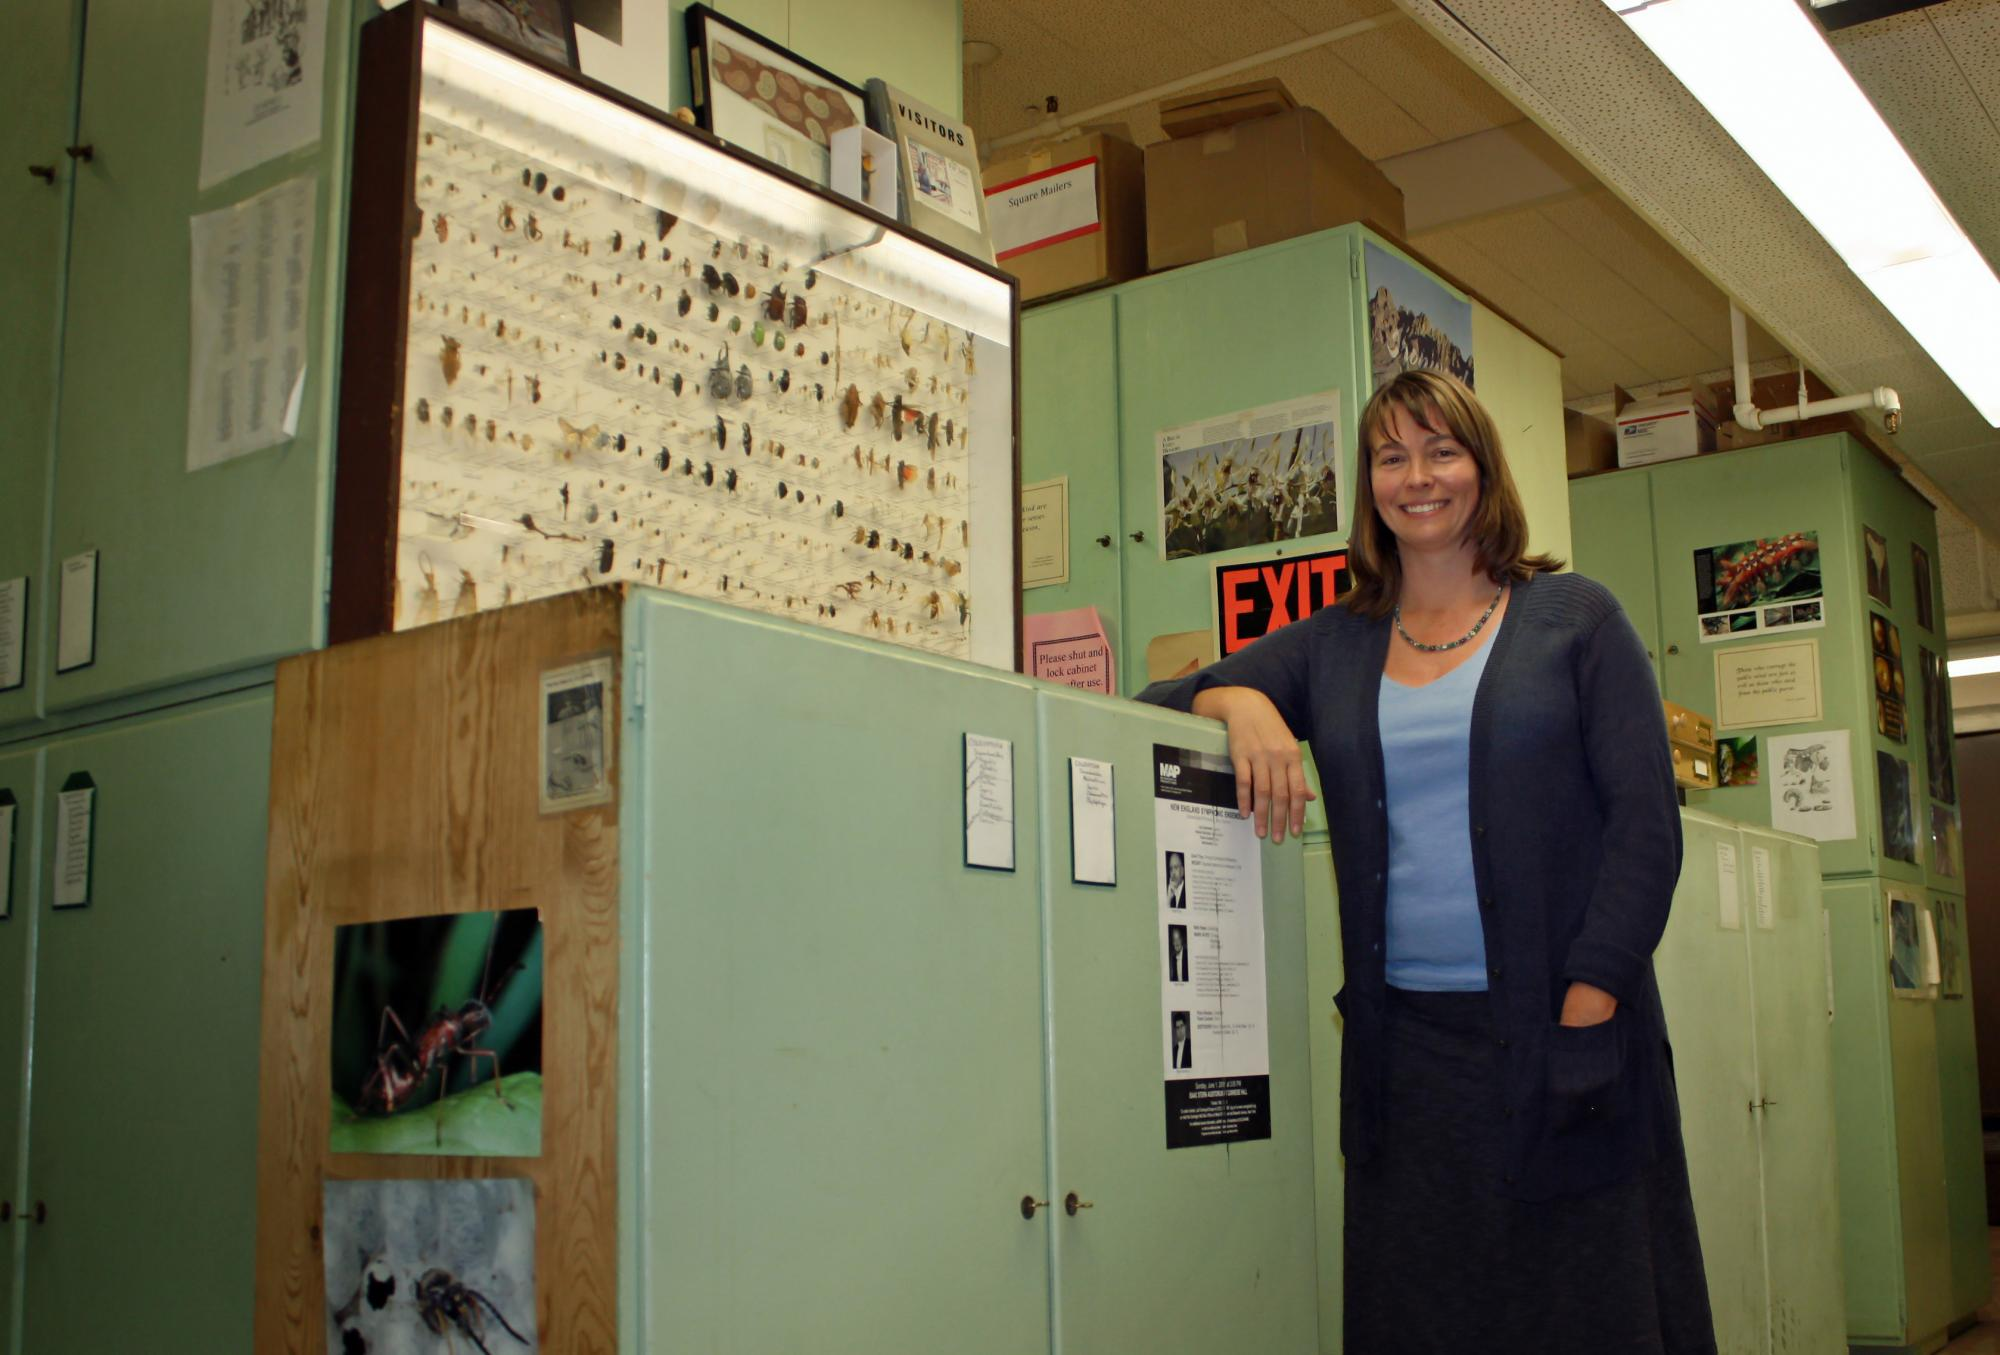 Wendy Moore, an assistant professor in the UA Department of Entomology, has been working to revitalize and better preserve the University's Insect Collection.